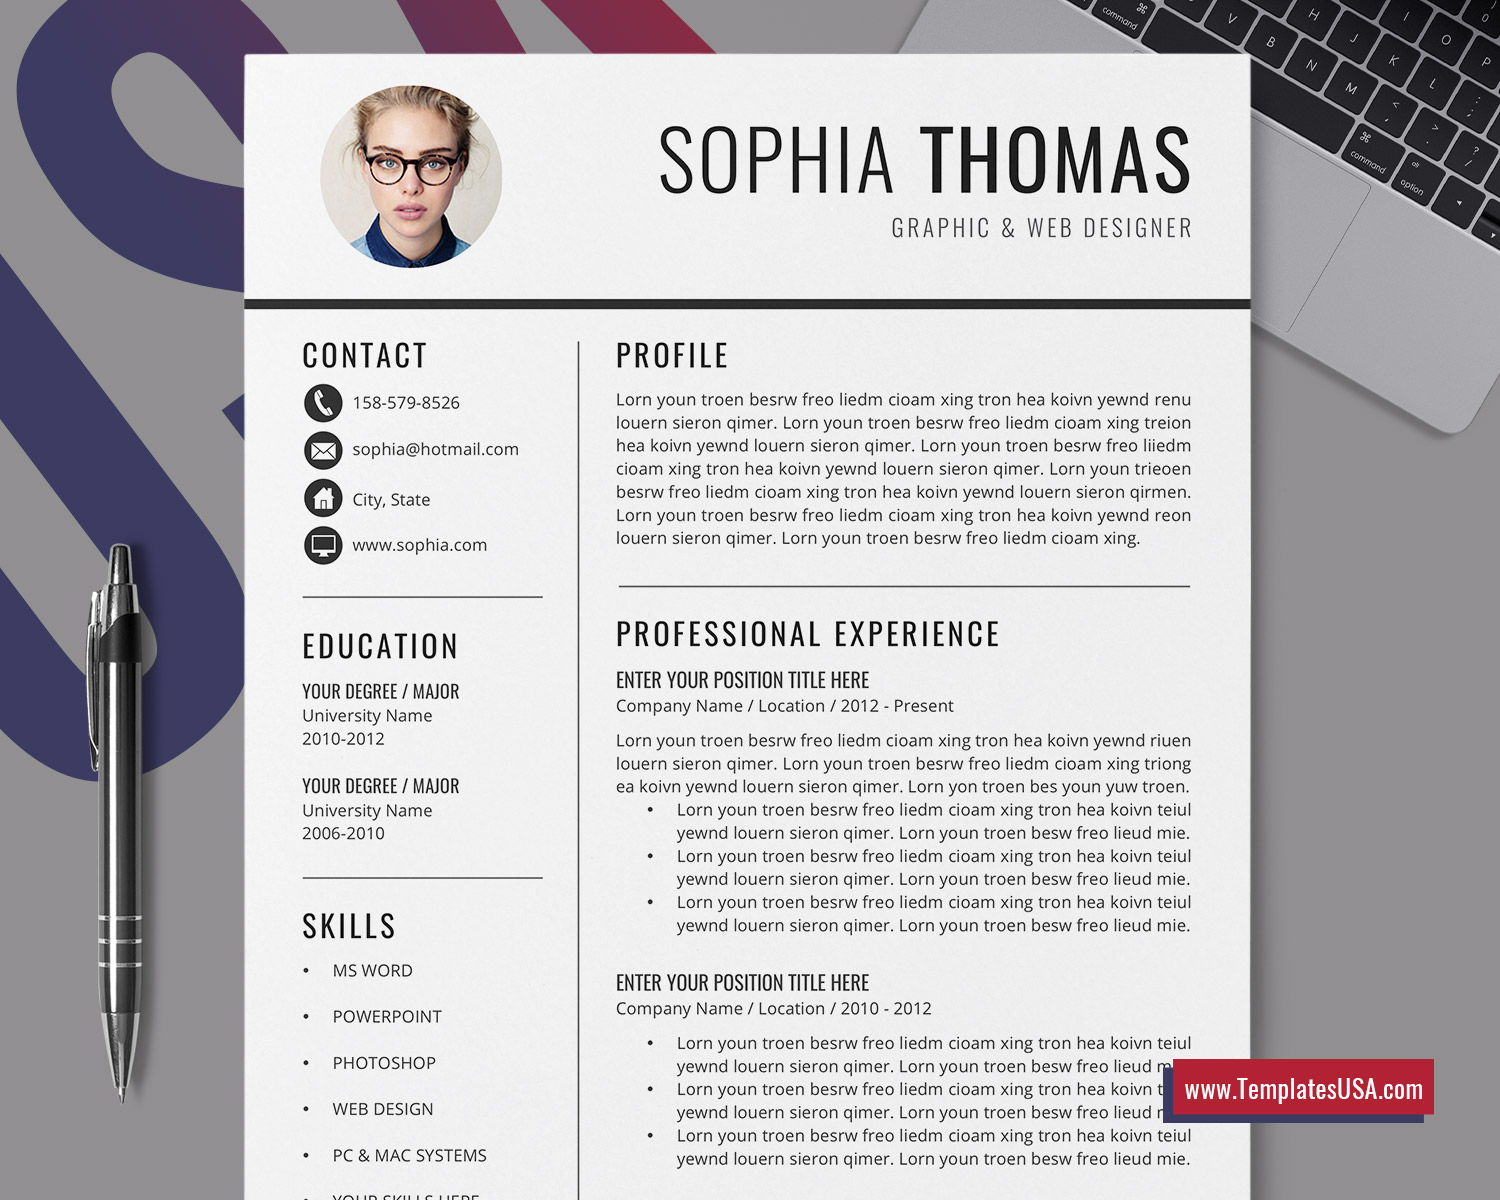 Professional Resume Template Simple Resume Format Minimalist Curriculum Vitae Modern Cv Template Cover Letter 1 3 Page Resume Design Editable Resume For Job Application Instant Download Templatesusa Com